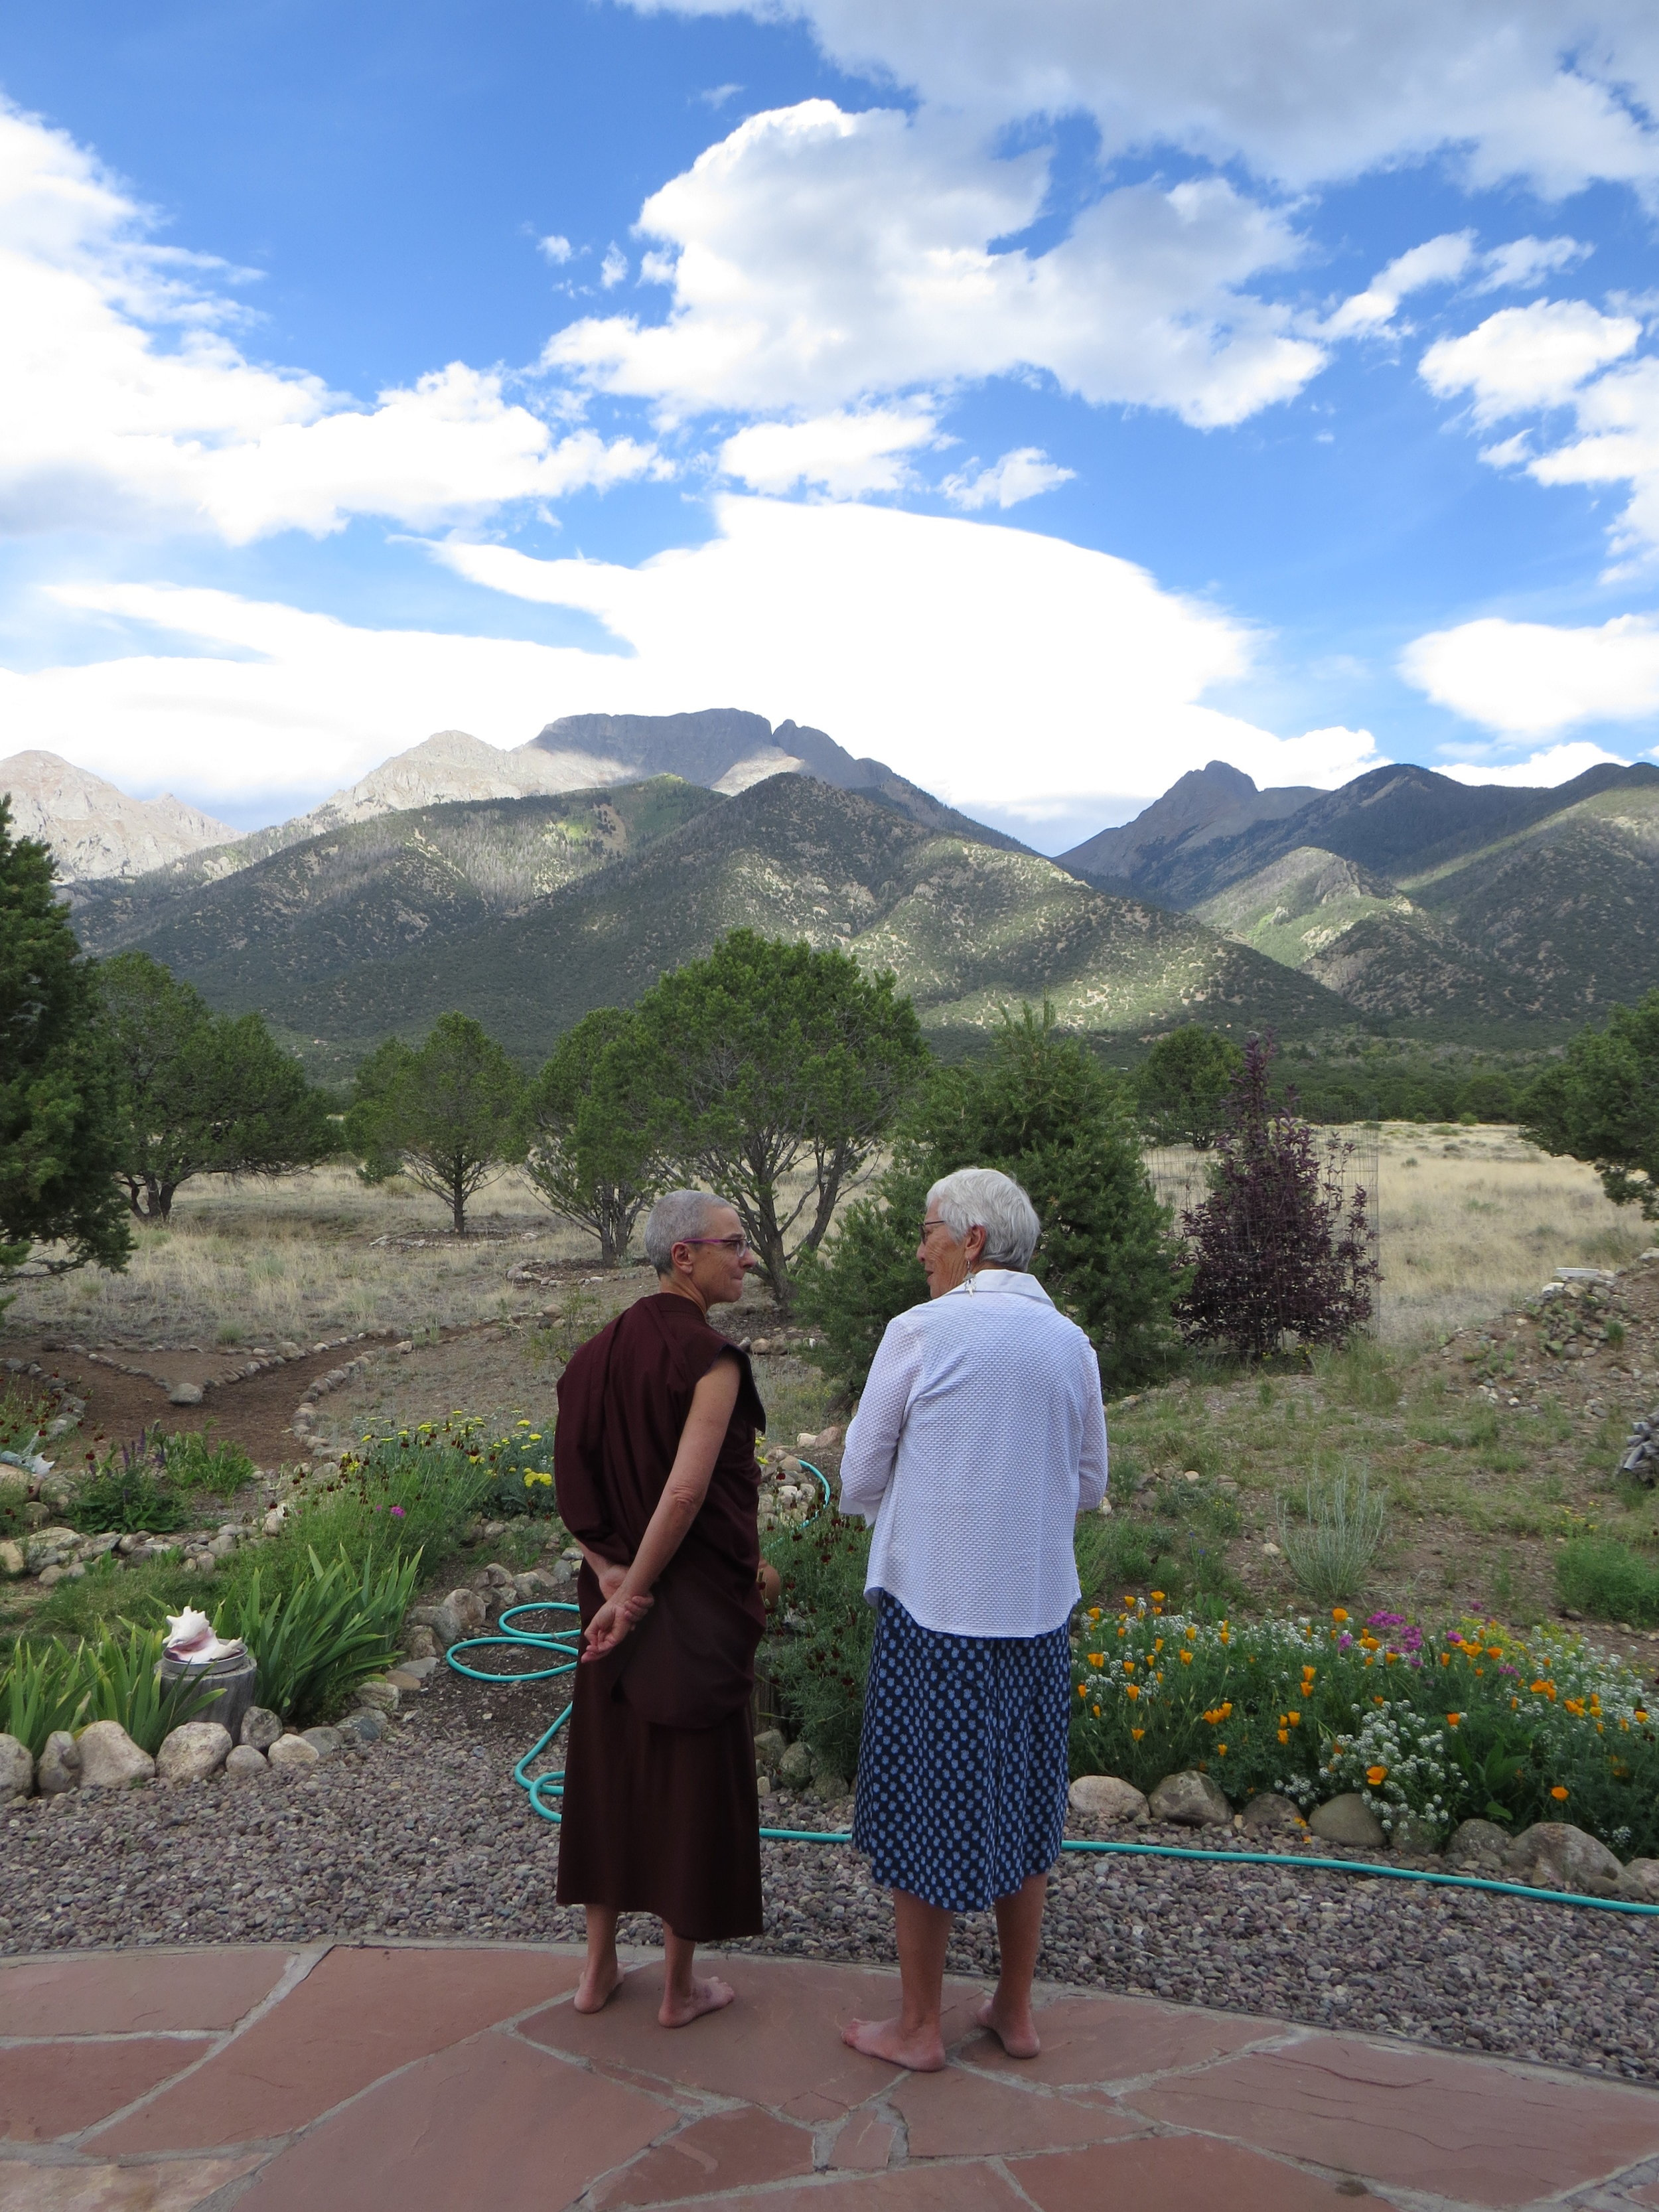 During the Open House, Ven. Thubten and Jane Harris enjoy a quiet moment together amidst Crestone's breathtaking scenery.